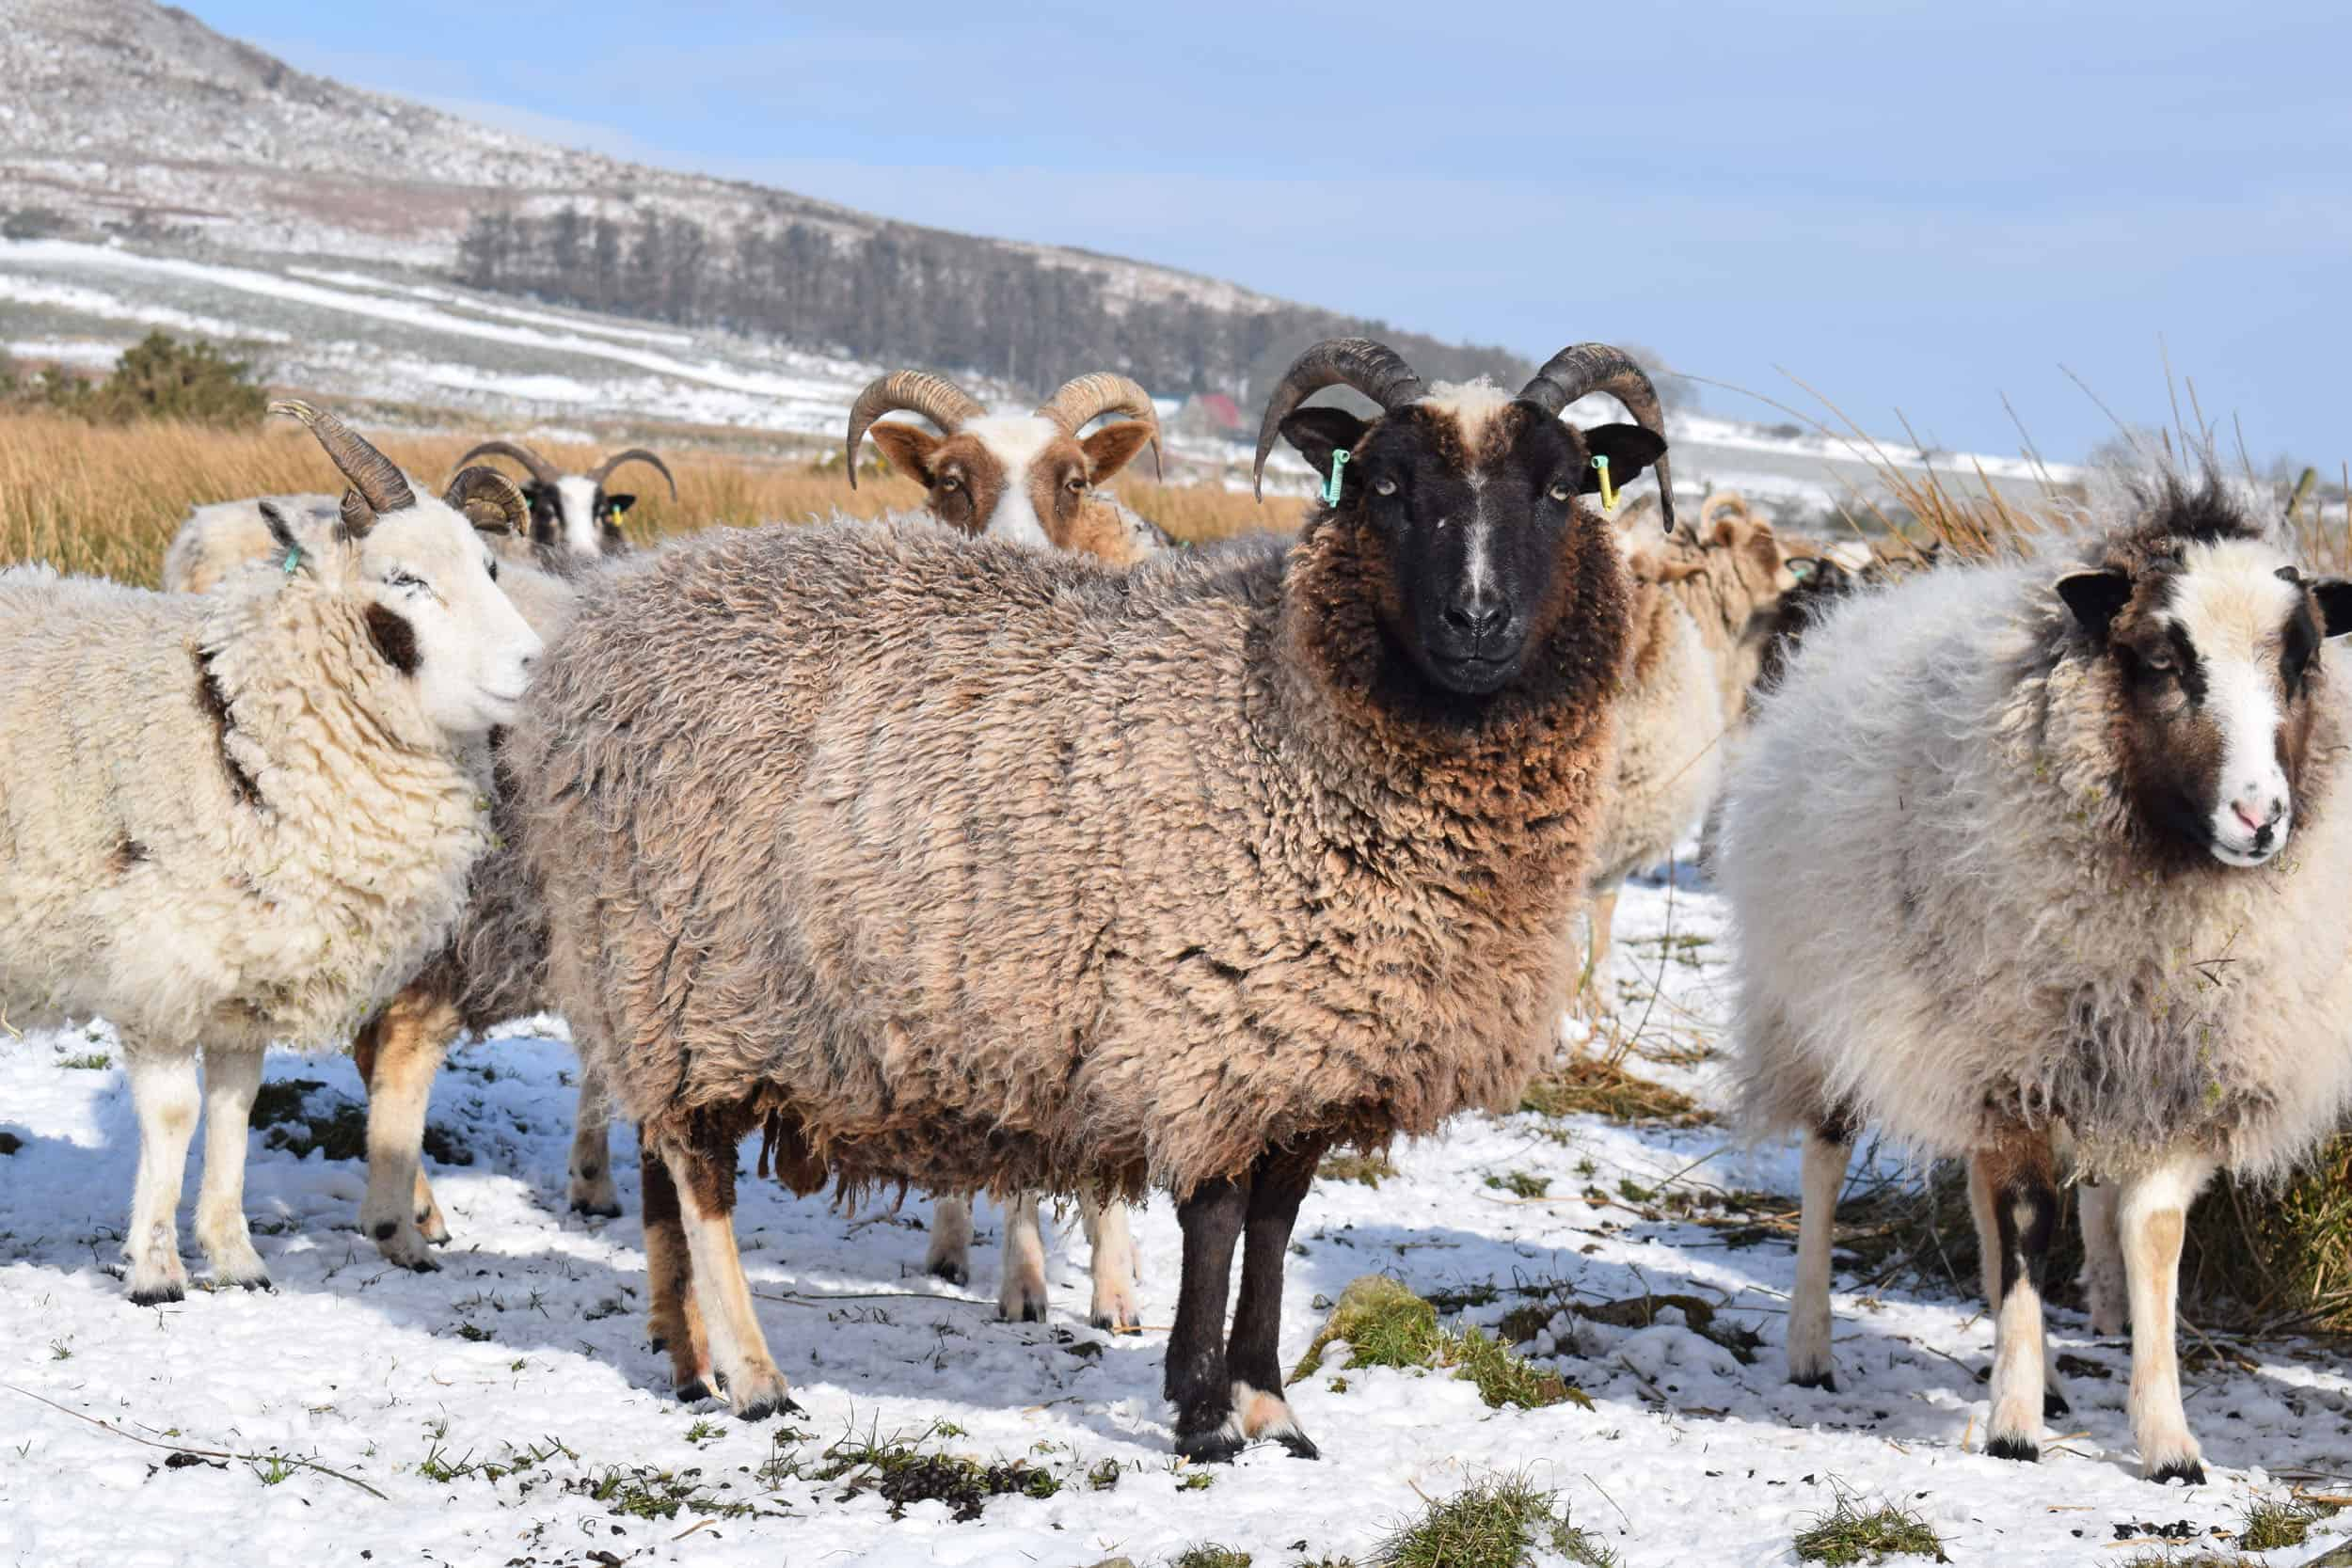 Minnie jacob cross shetland sheep patchwork sheep kind fibre lavender grey snow